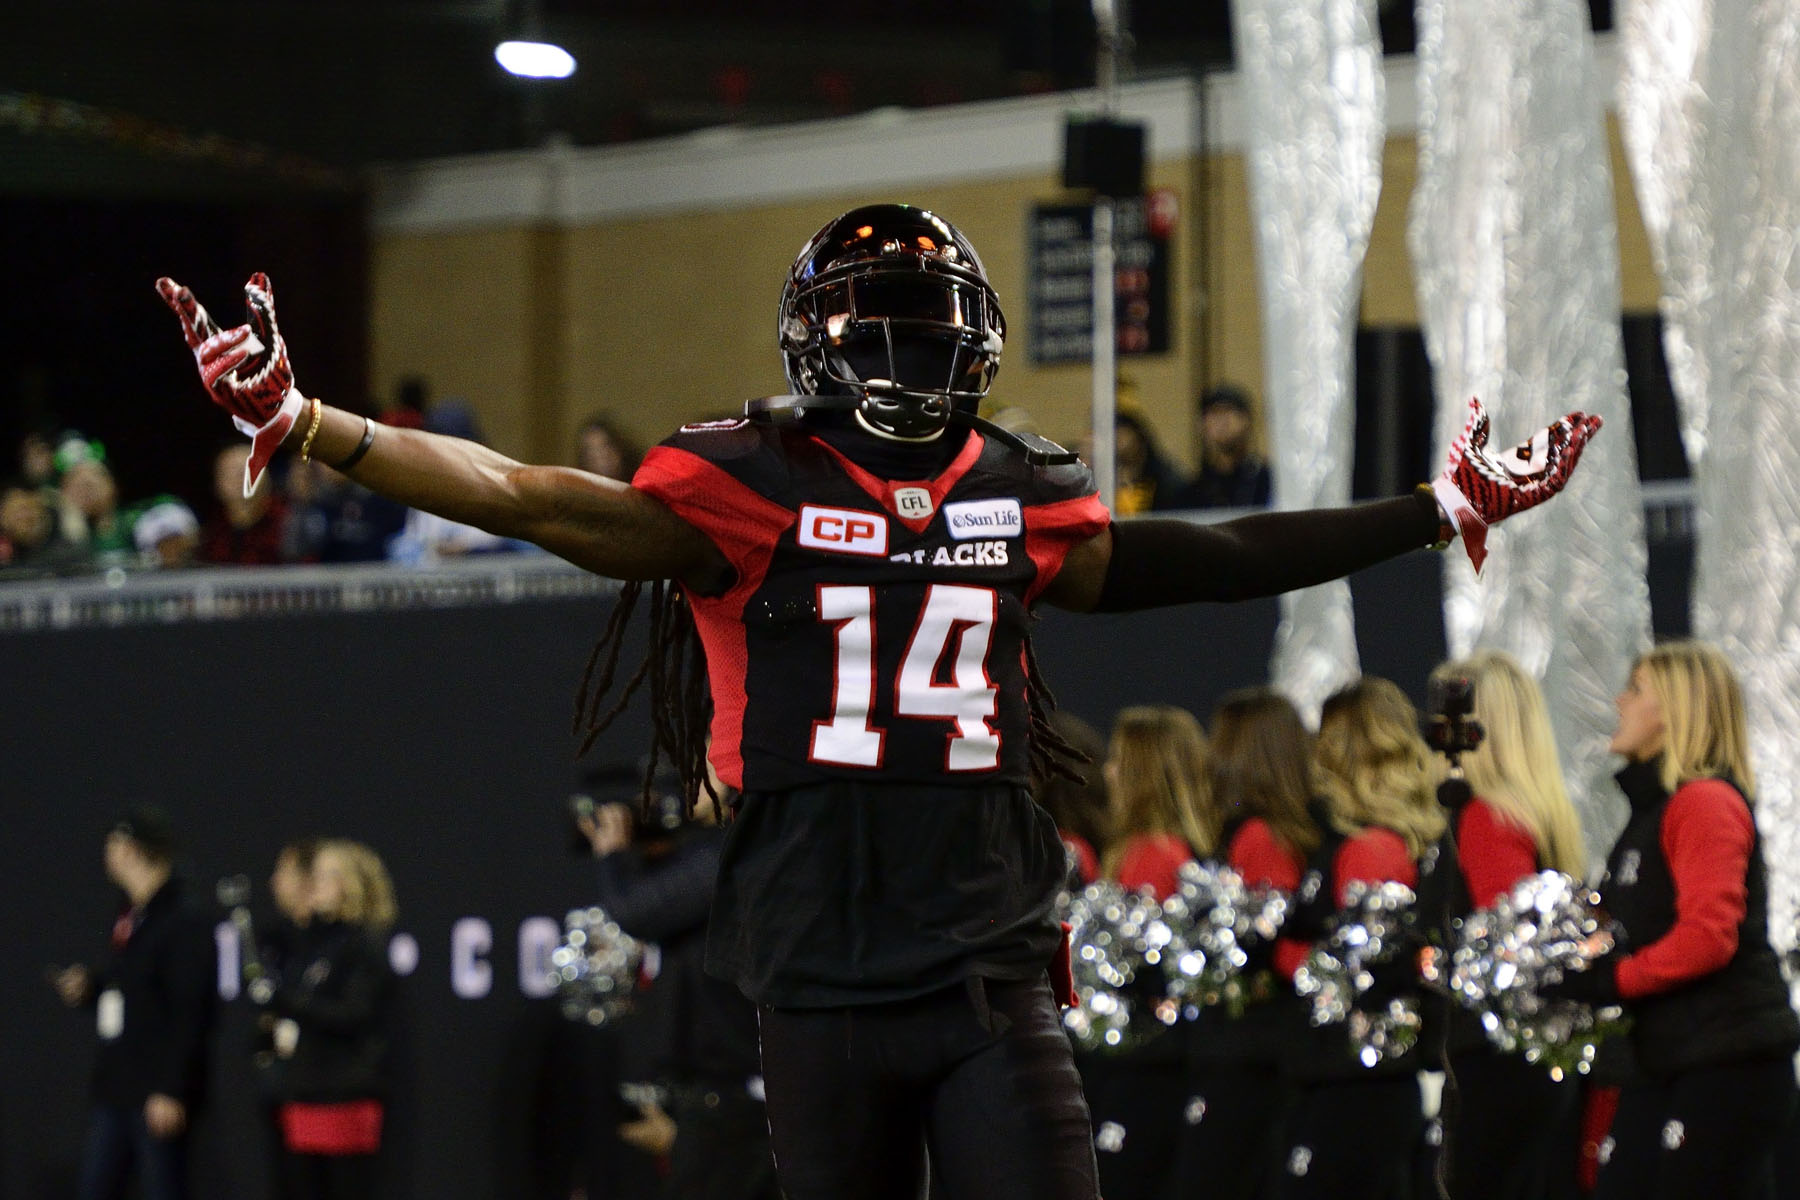 Abdul Kanneh, defensive back for the Ottawa REDBLACKS rallies the crowd before the game.